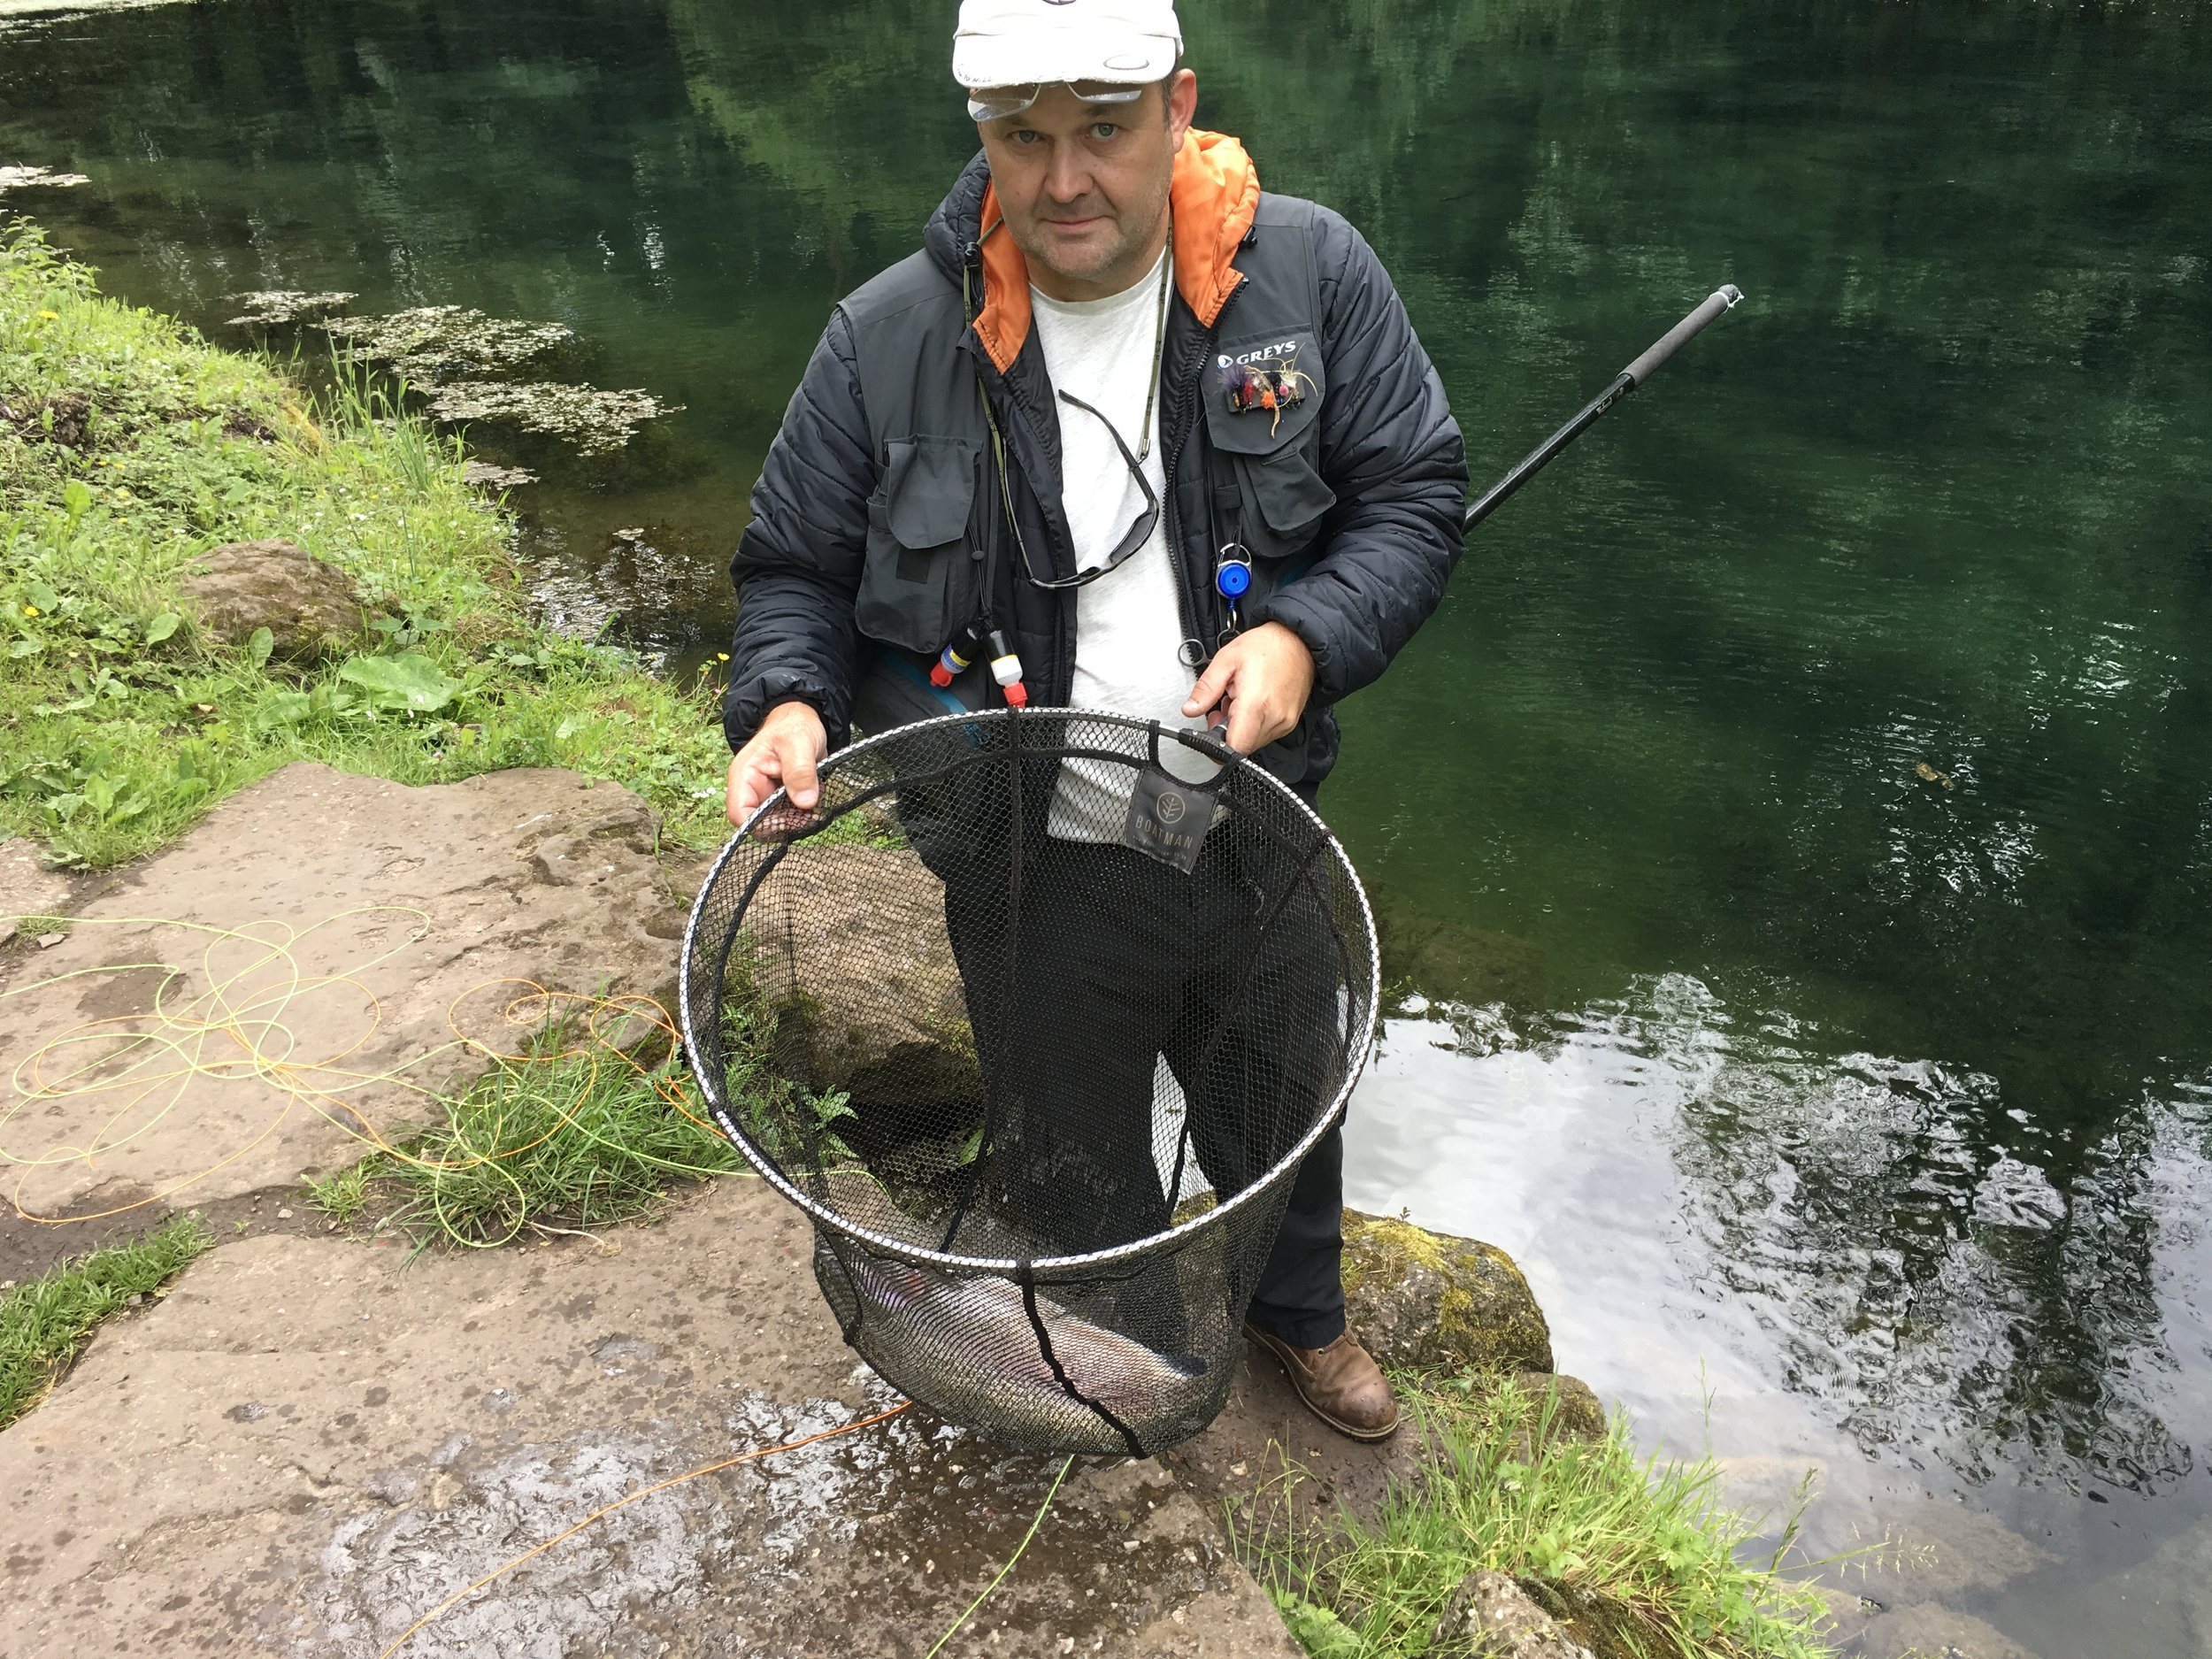 John Burton caught a tagged fish at Bigwell fishery.